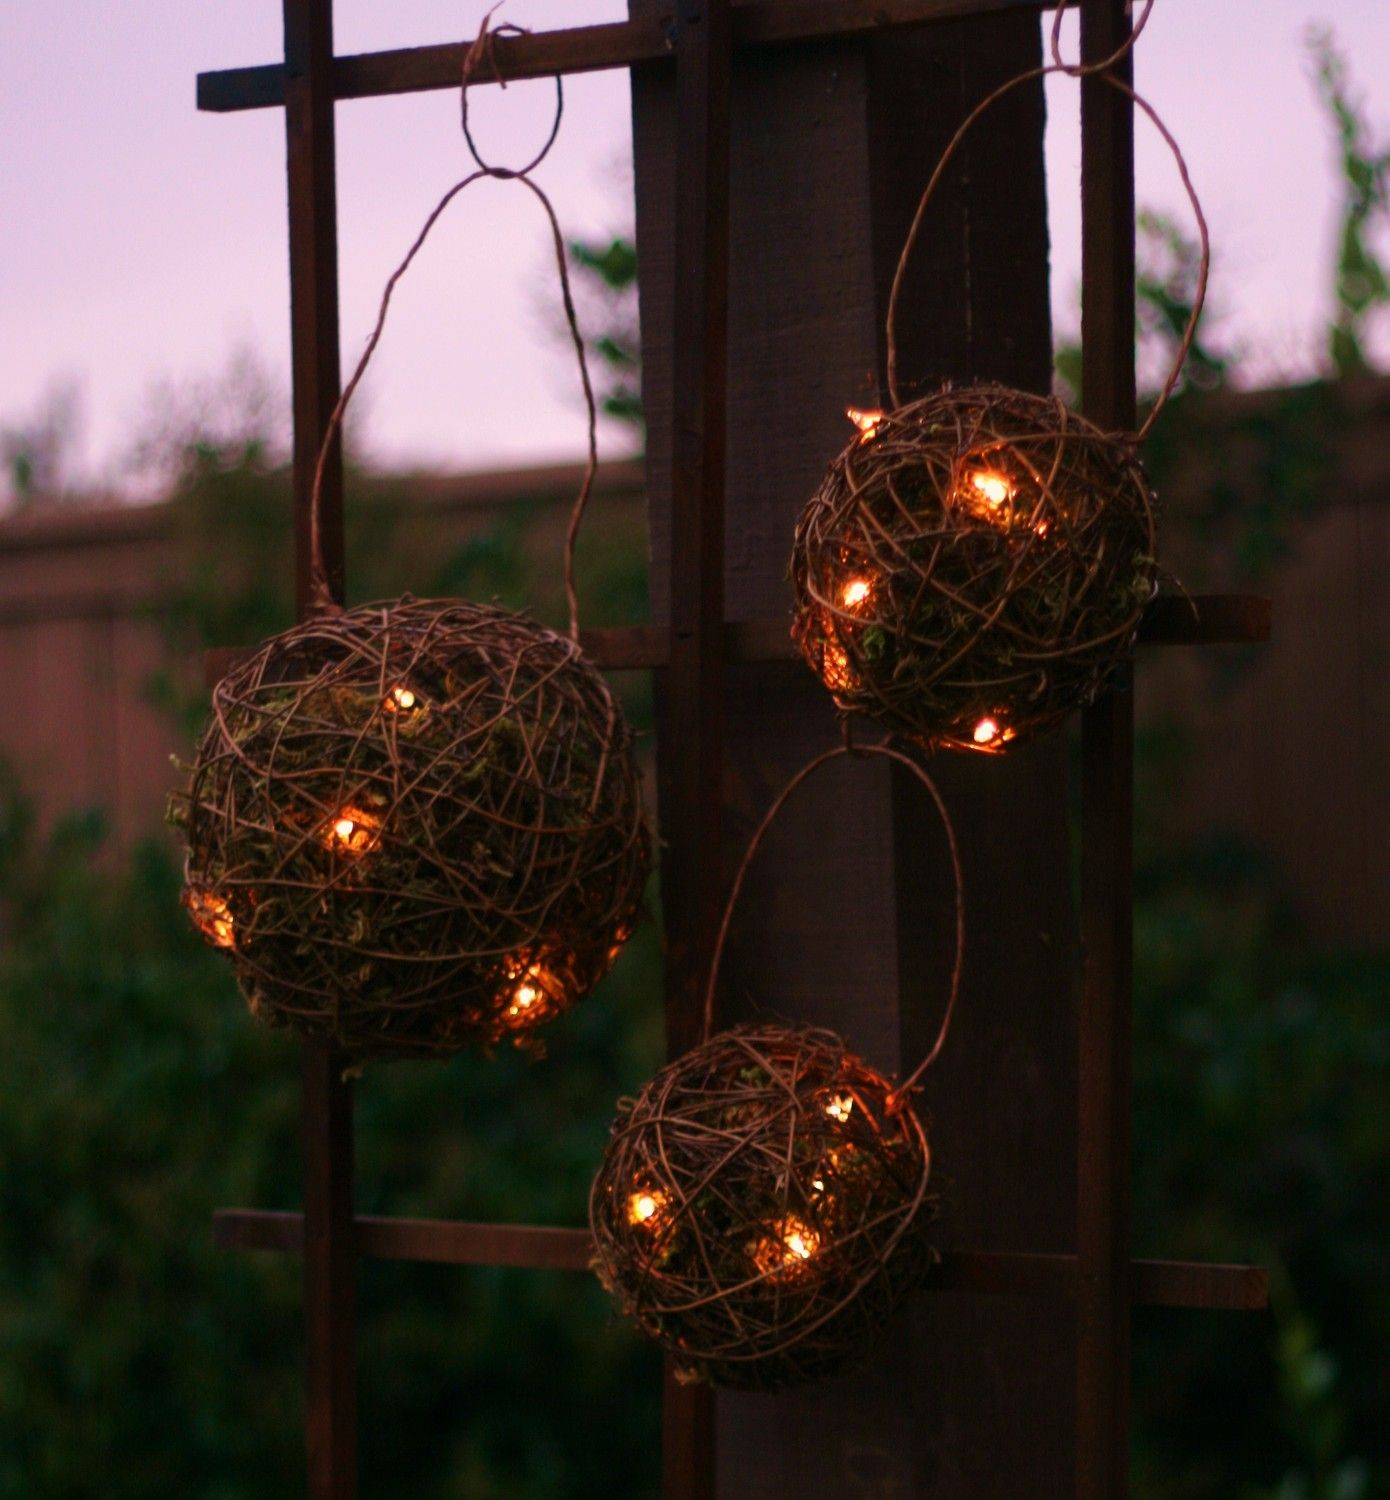 Wedding decorations outside house  Outdoor Rustic Decoration Firefly Lightning Bug Lanterns